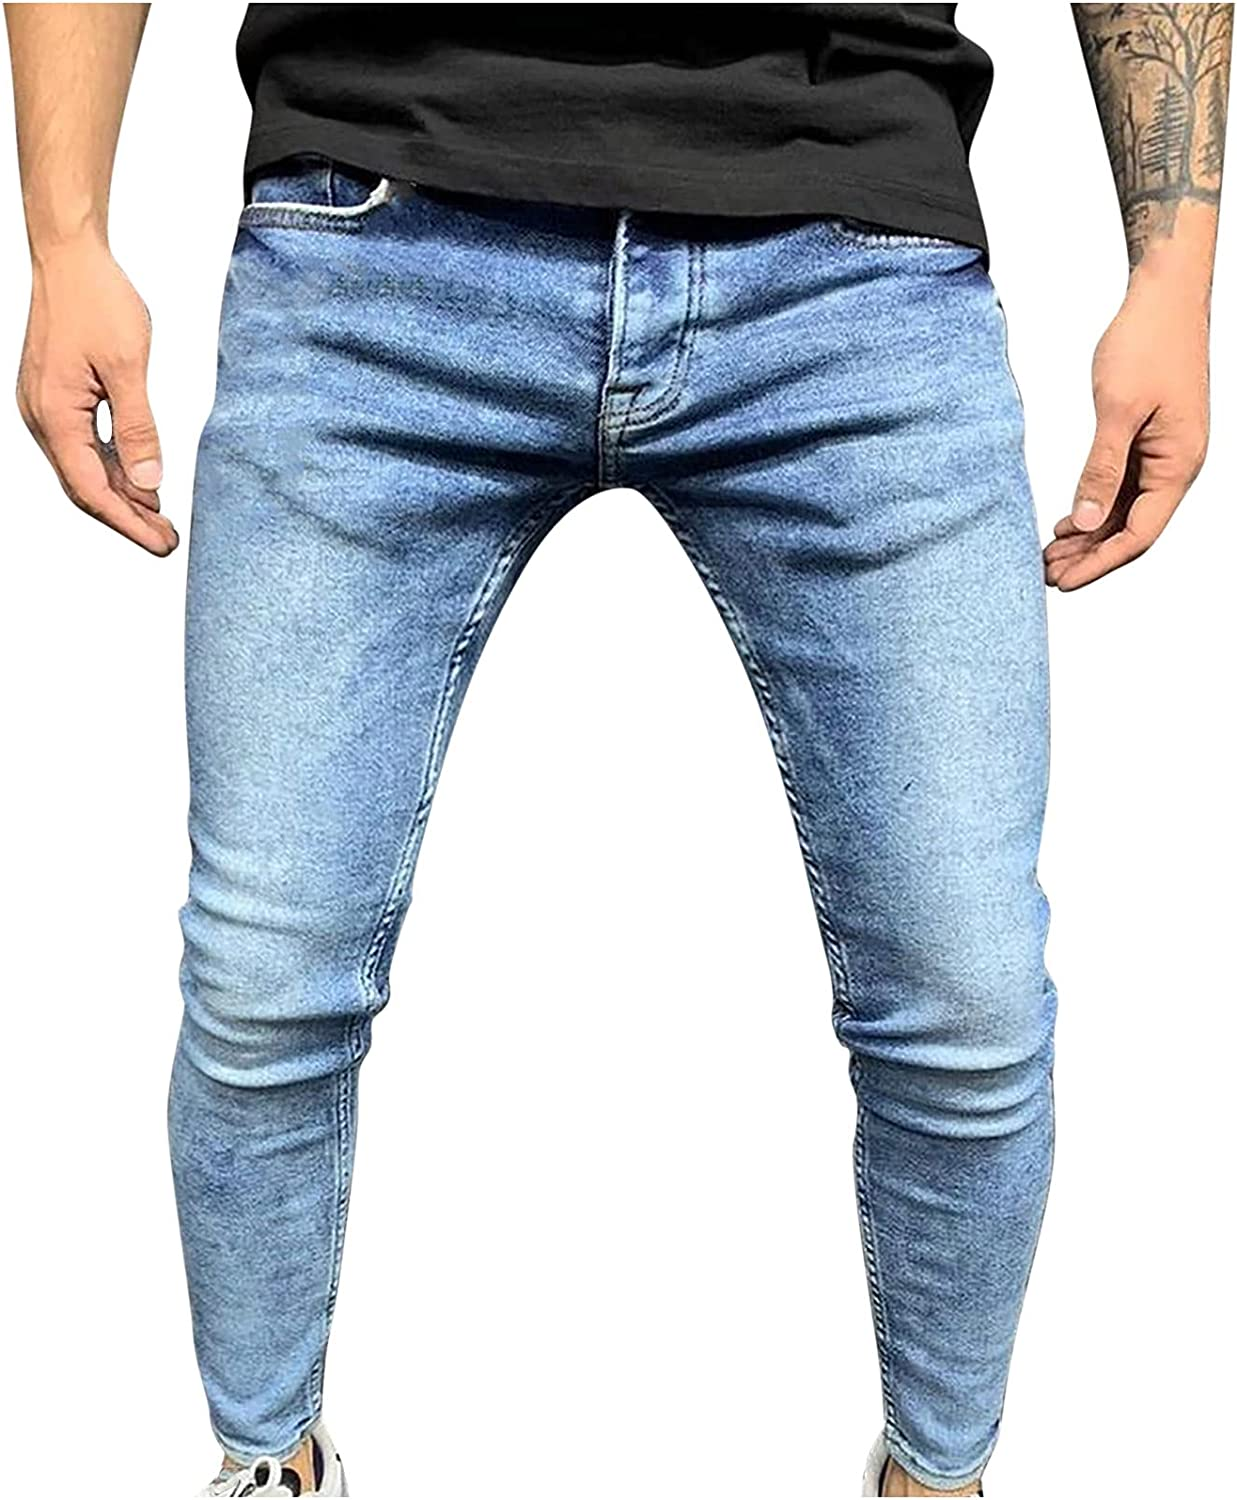 Ripped Jeans for Men Skinny Denim Stretch Popular standard Distressed Animer and price revision Pants Freye